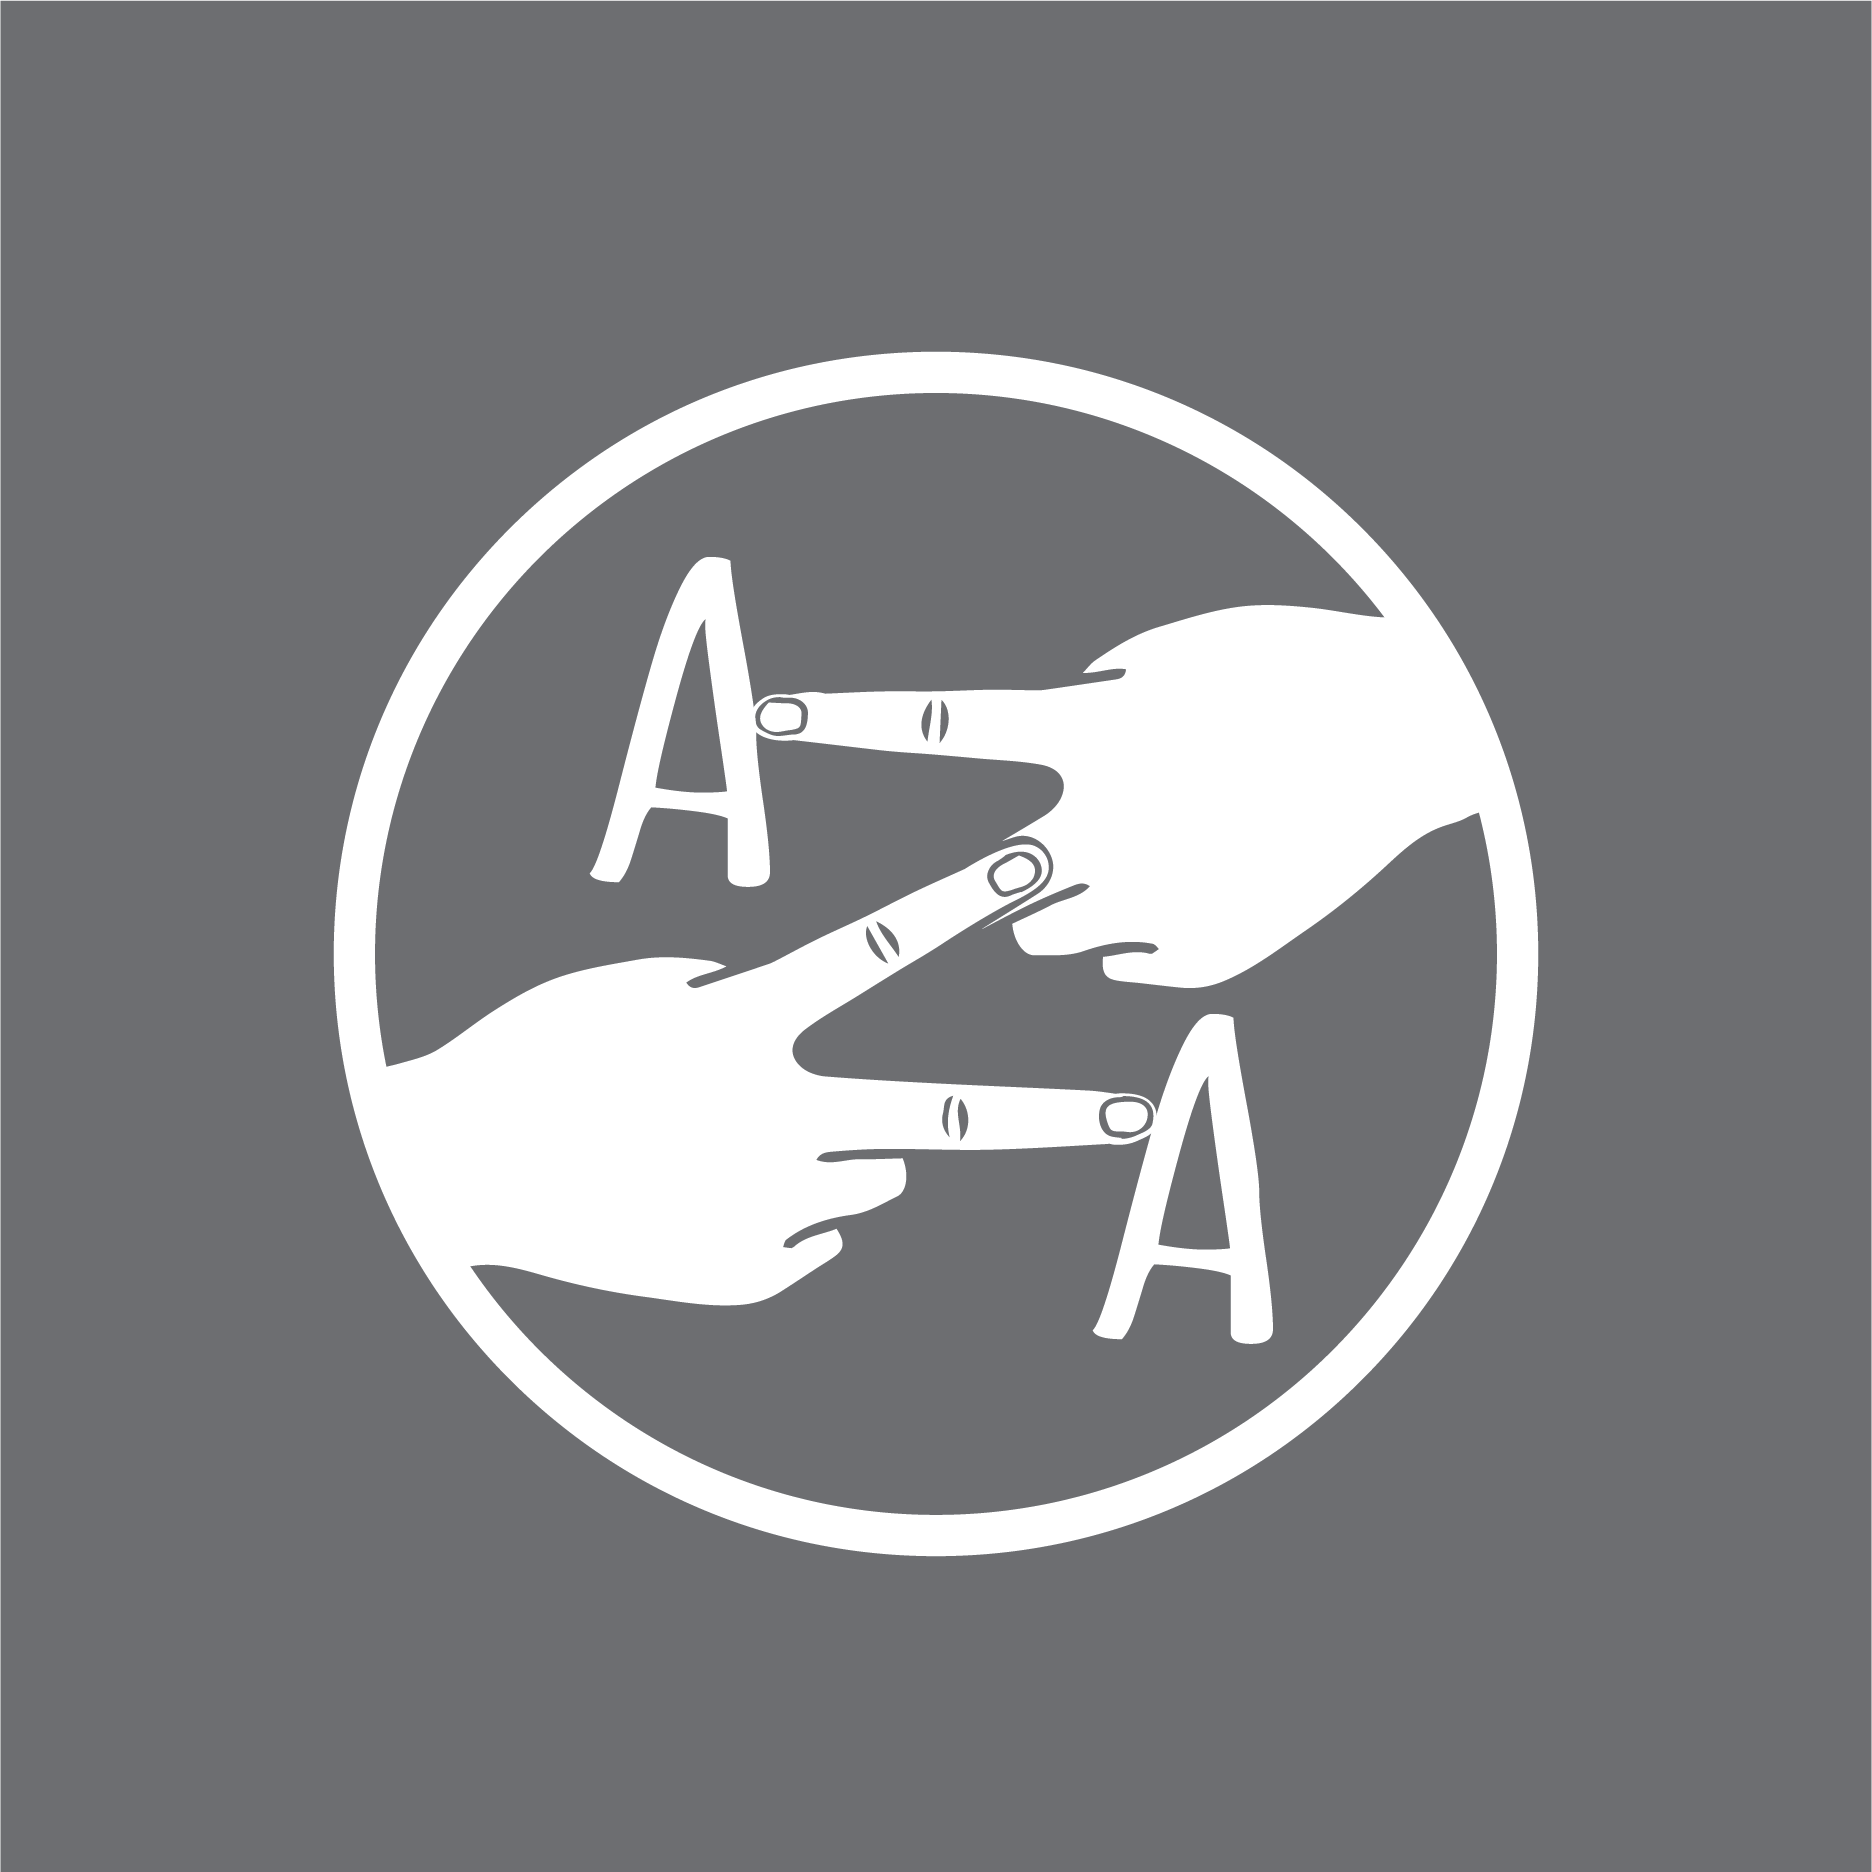 AZA Front Design.png